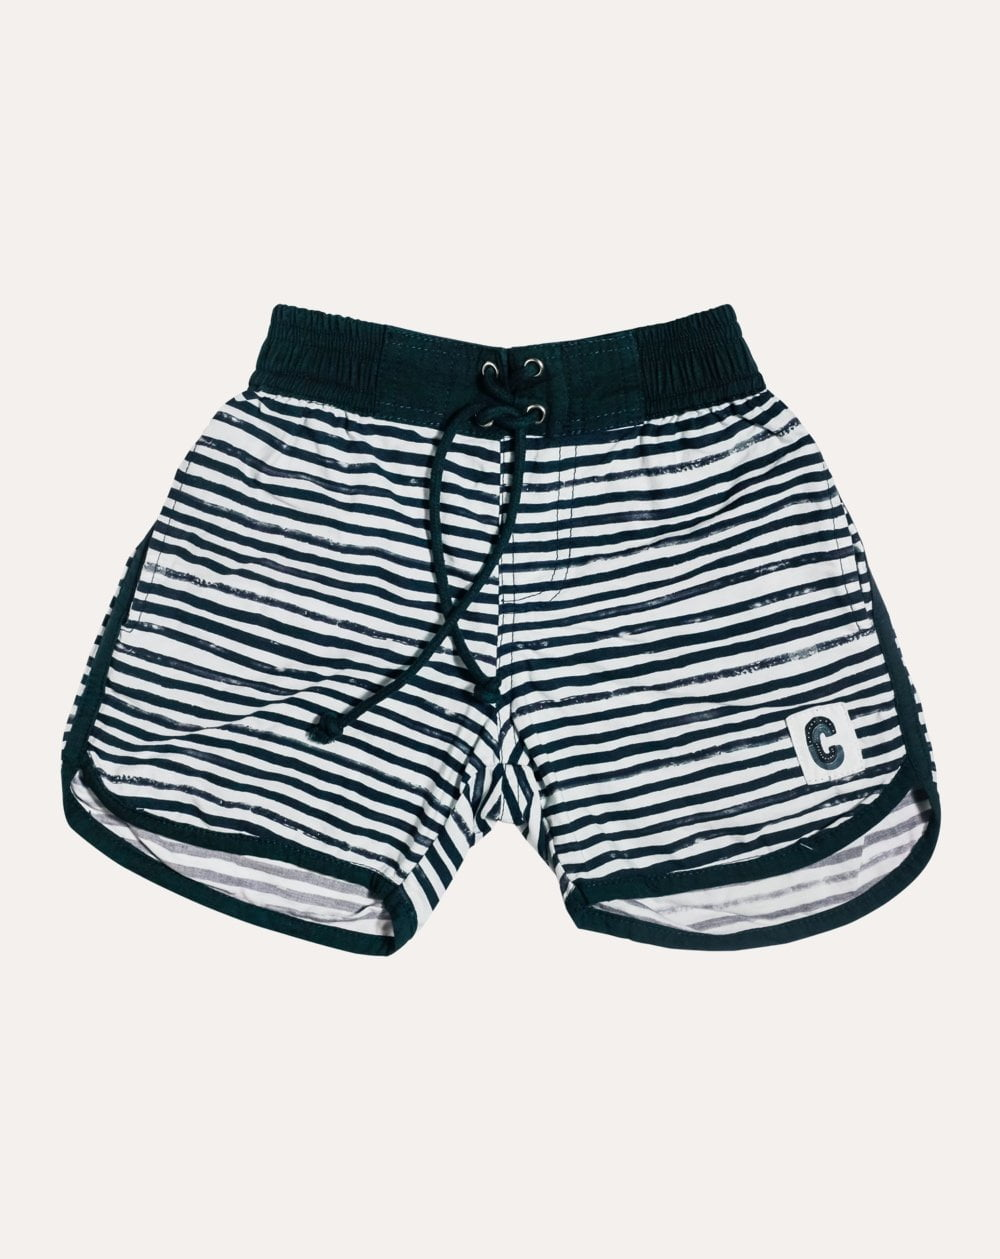 Make Waves Organic Cotton Beach Shorts